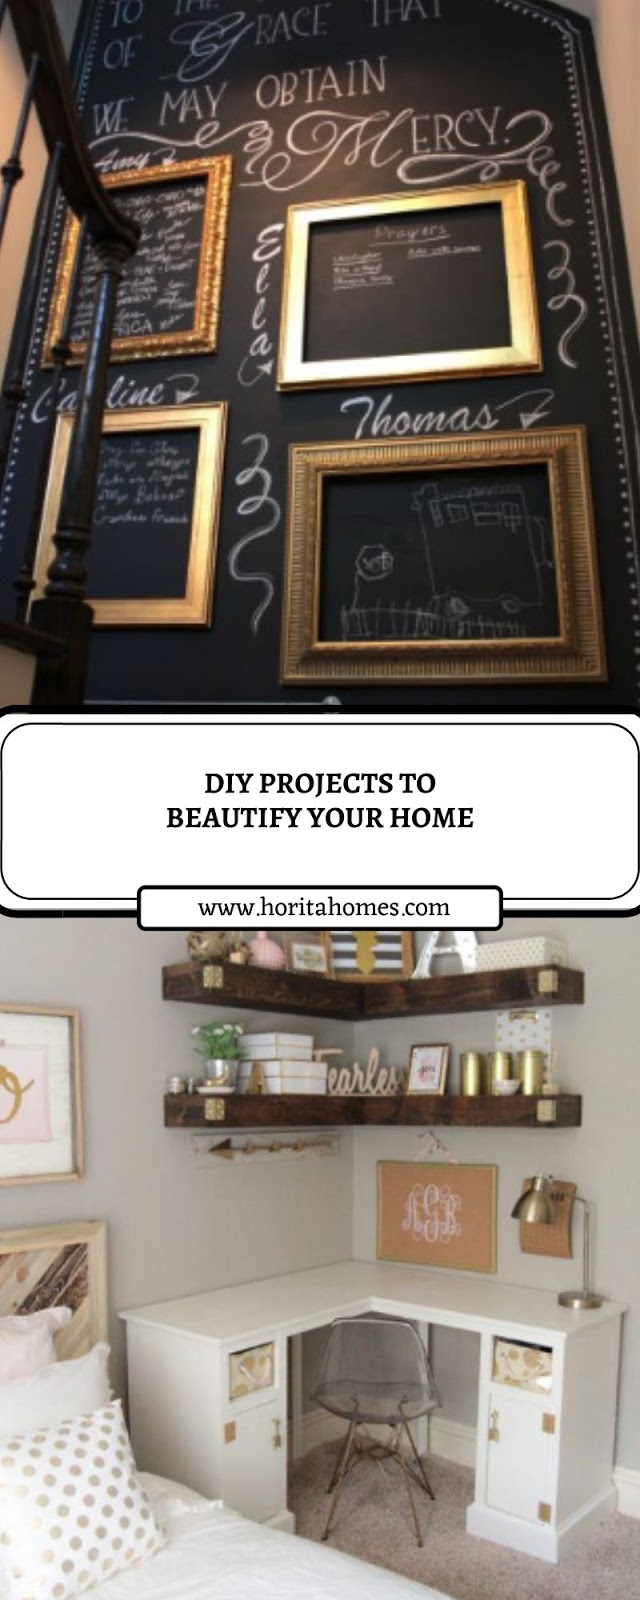 DIY PROJECTS TO BEAUTIFY YOUR HOME